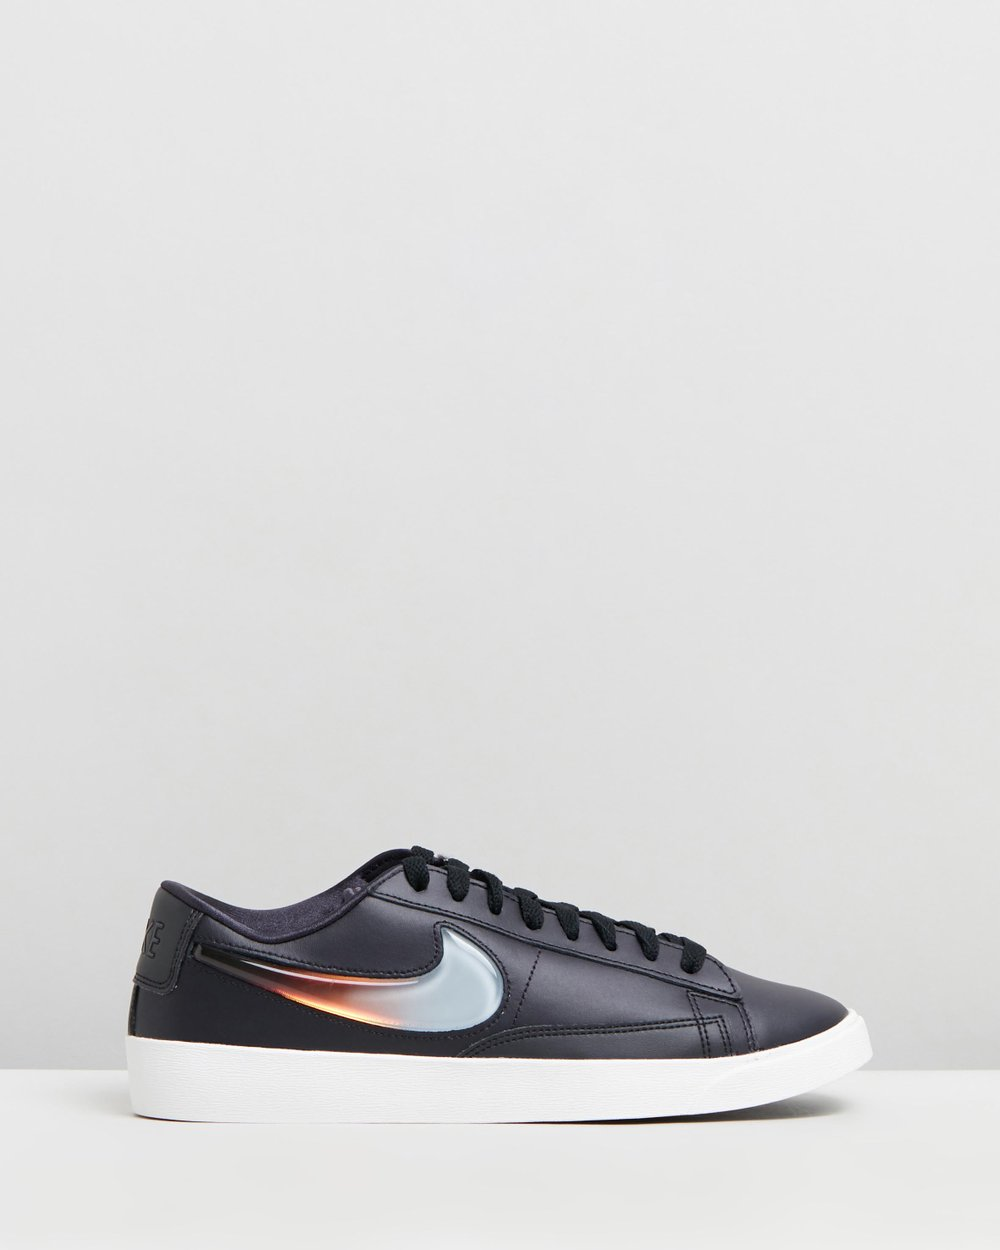 1cf2437dac1c Blazer Low LX - Women s by Nike Online